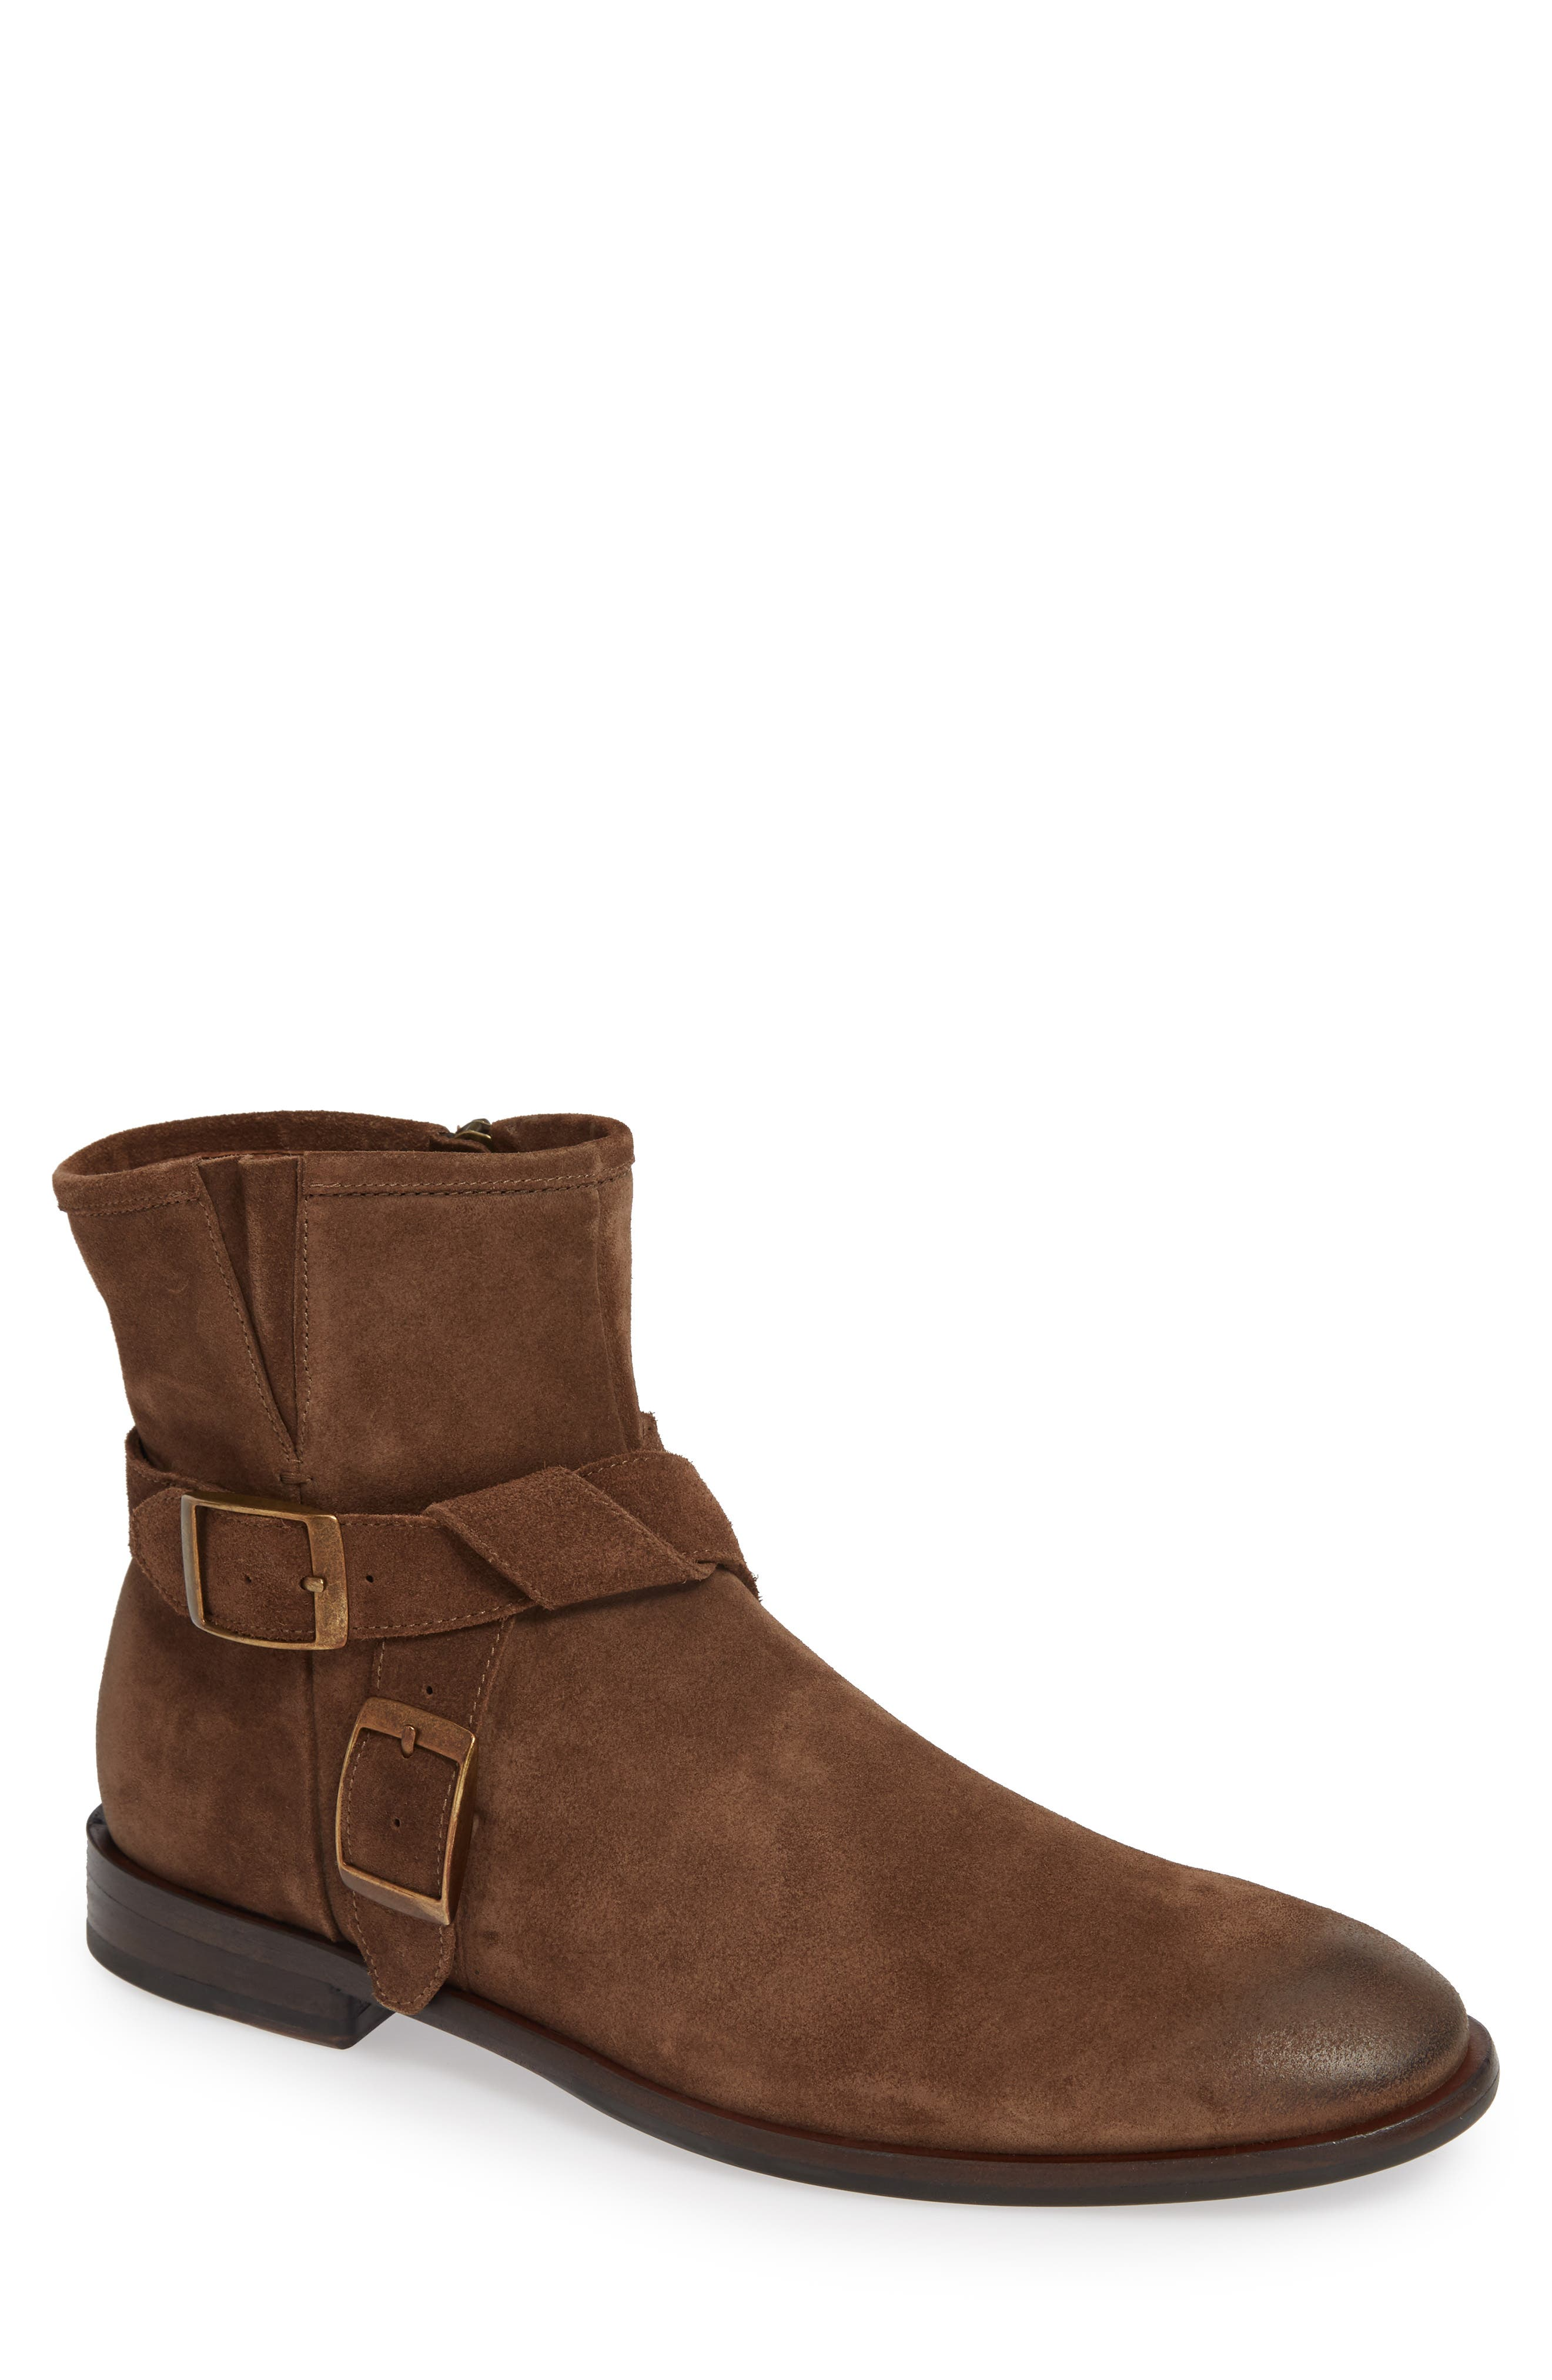 John Varvatos NYC Double Buckle Tall Boot,                         Main,                         color, ANTIQUE BROWN SUEDE